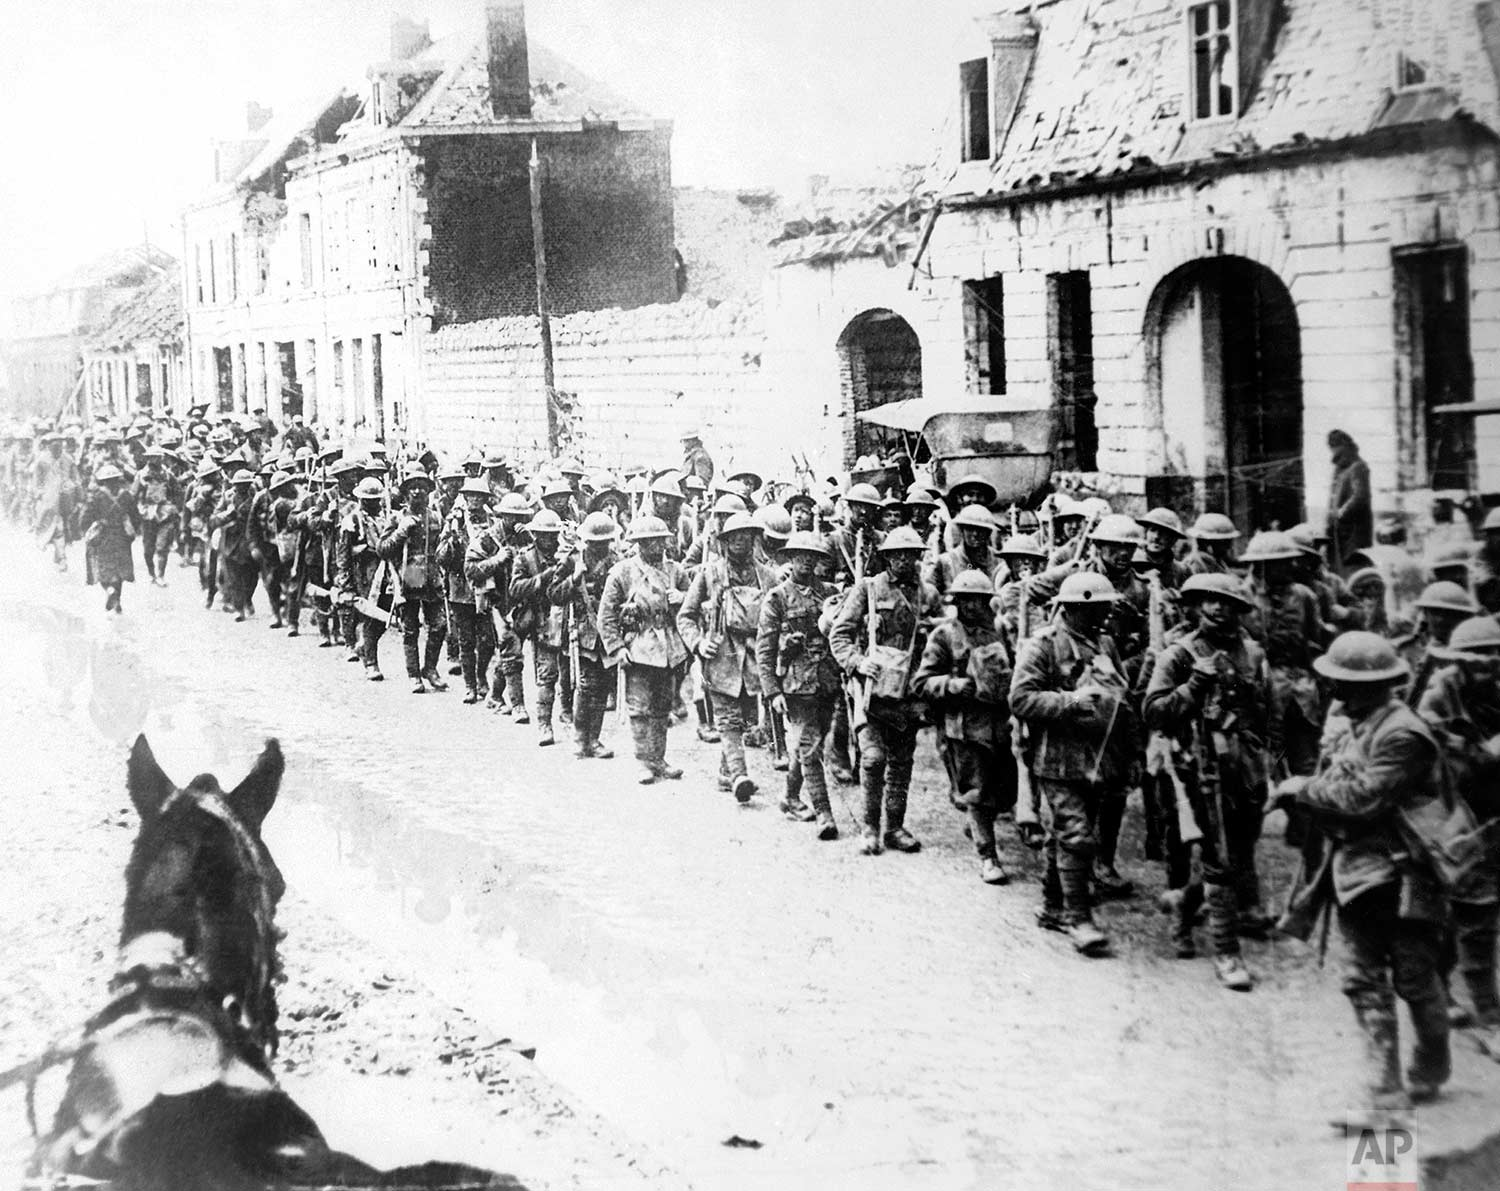 In this 1917 photo, British World War One soldiers return in formation to Ypres, Belgium. (AP Photo)